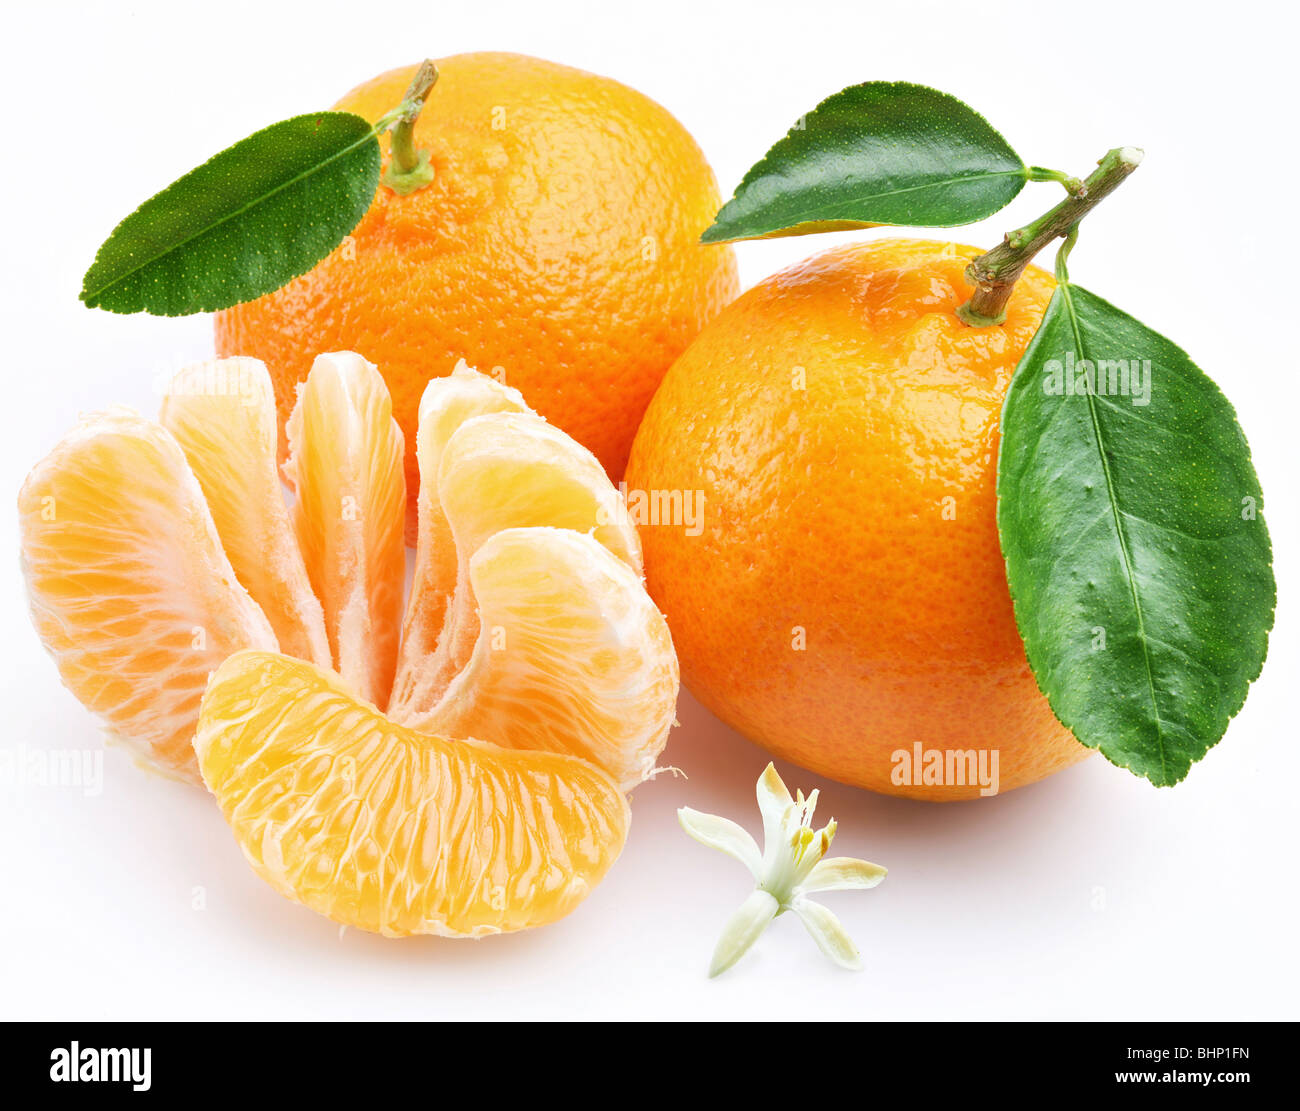 Tangerine with segments on a white background - Stock Image